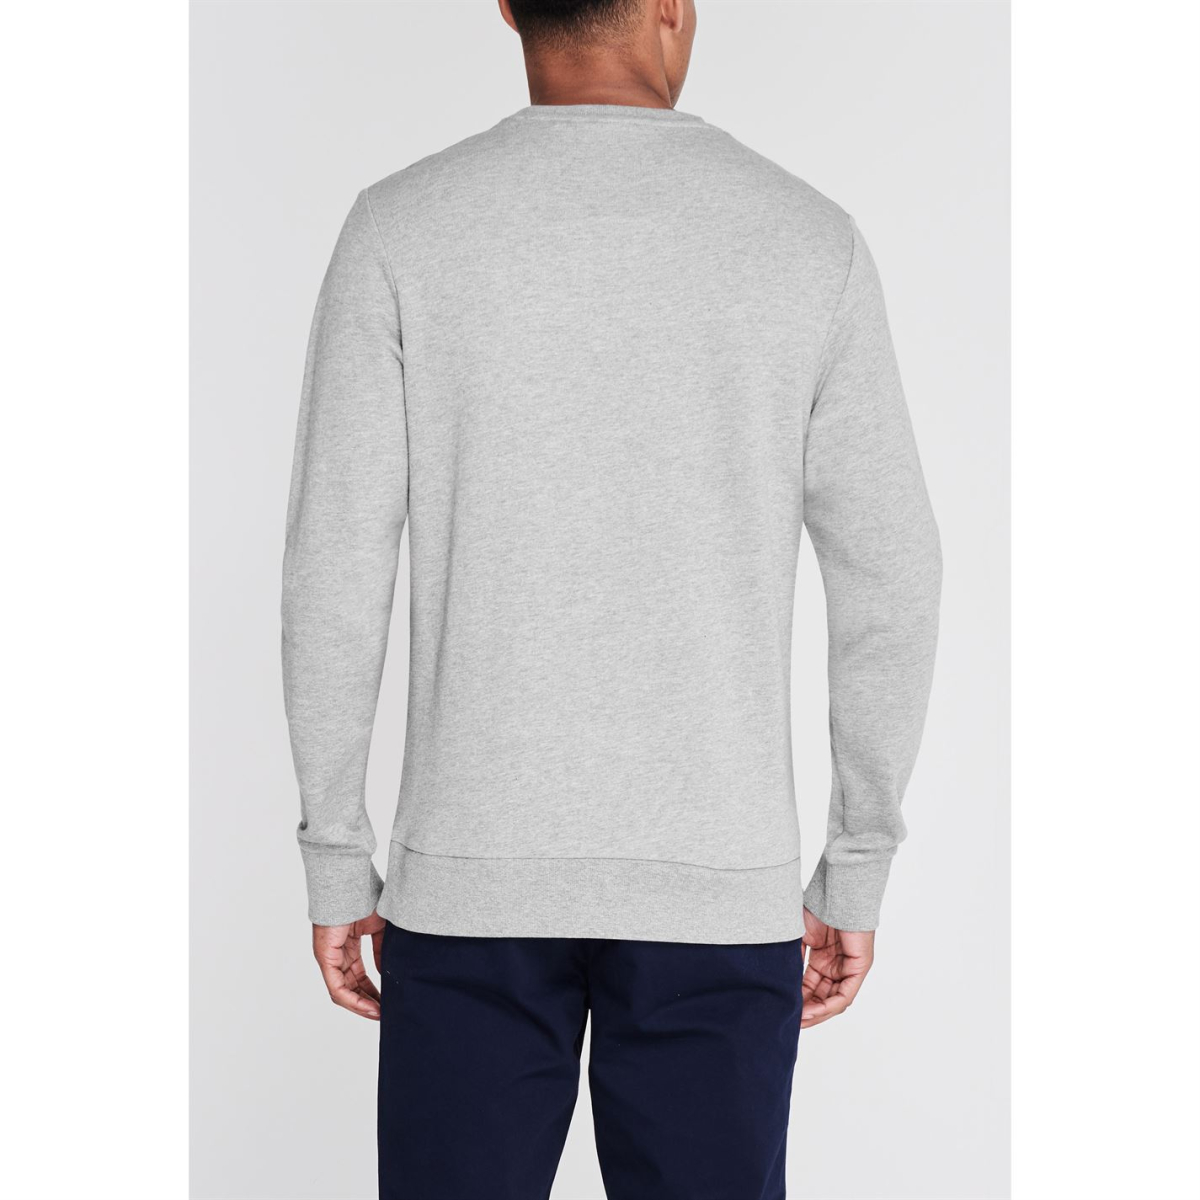 Jack And Jones Original Sweatshirt Herren Pullover